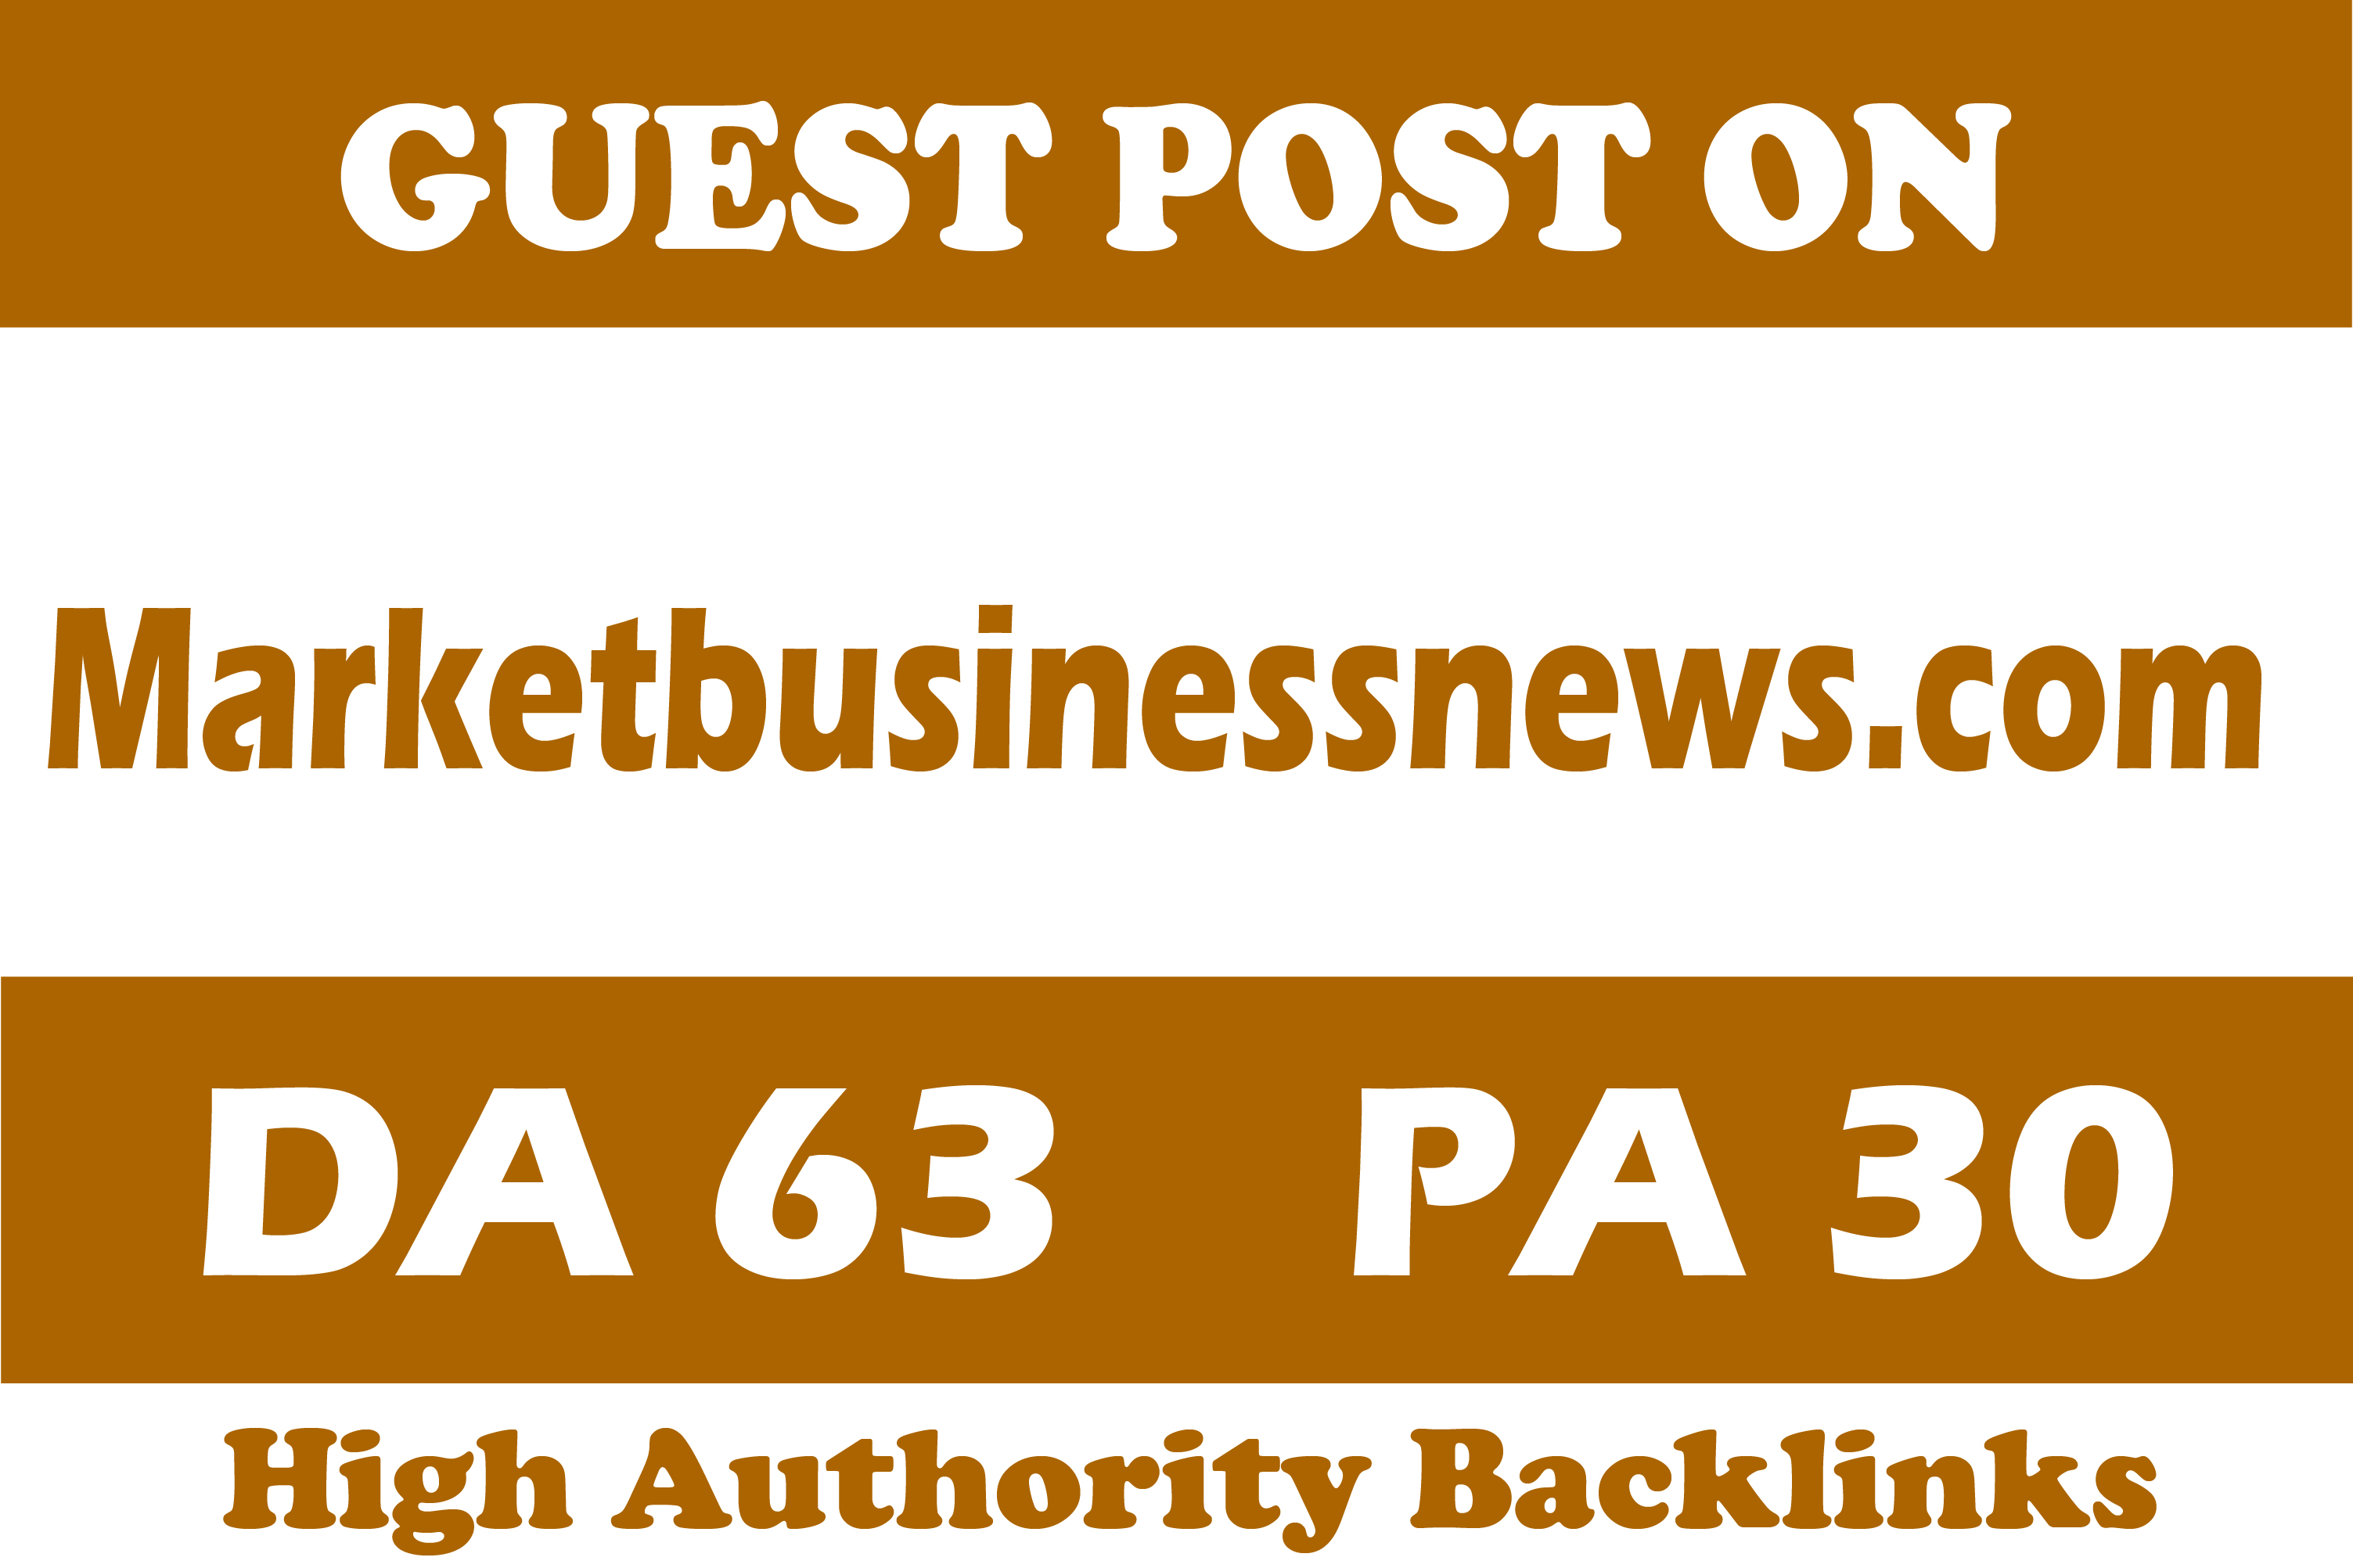 Publish guest post on Marketbusinessnews dot com your website ranking